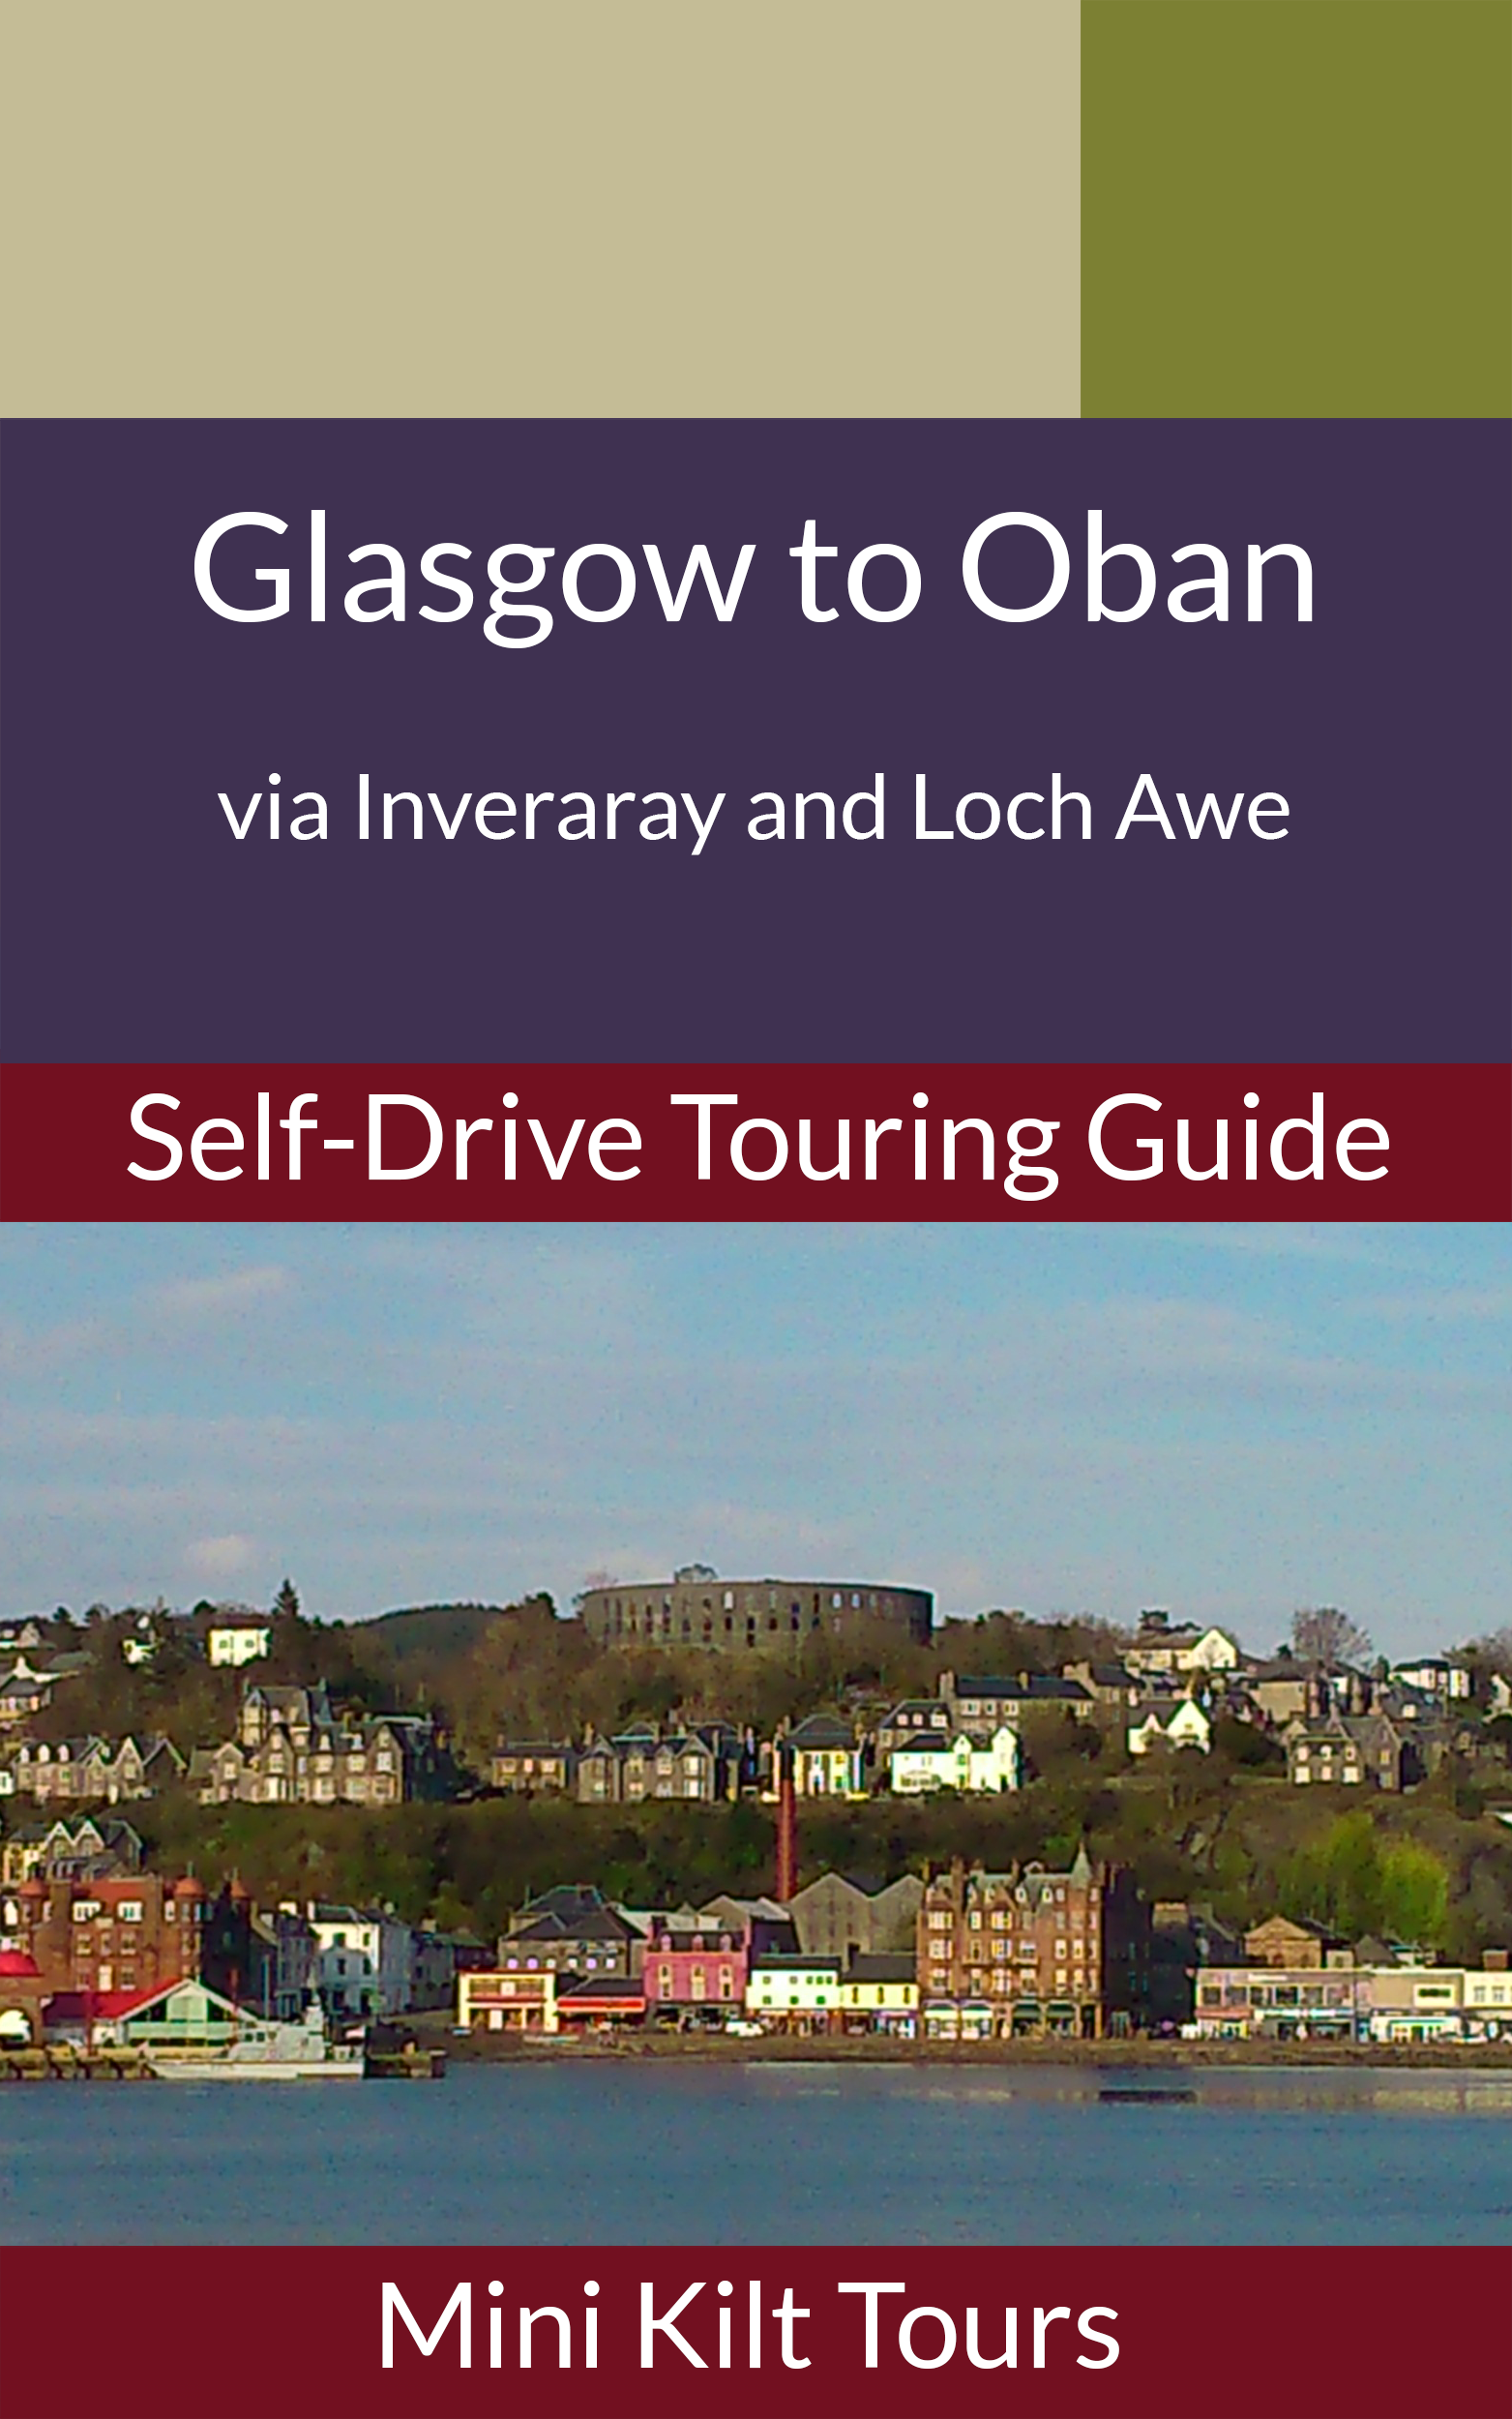 Cover of self drive eBook by Mini Kilt Tours from Glasgow to Oban